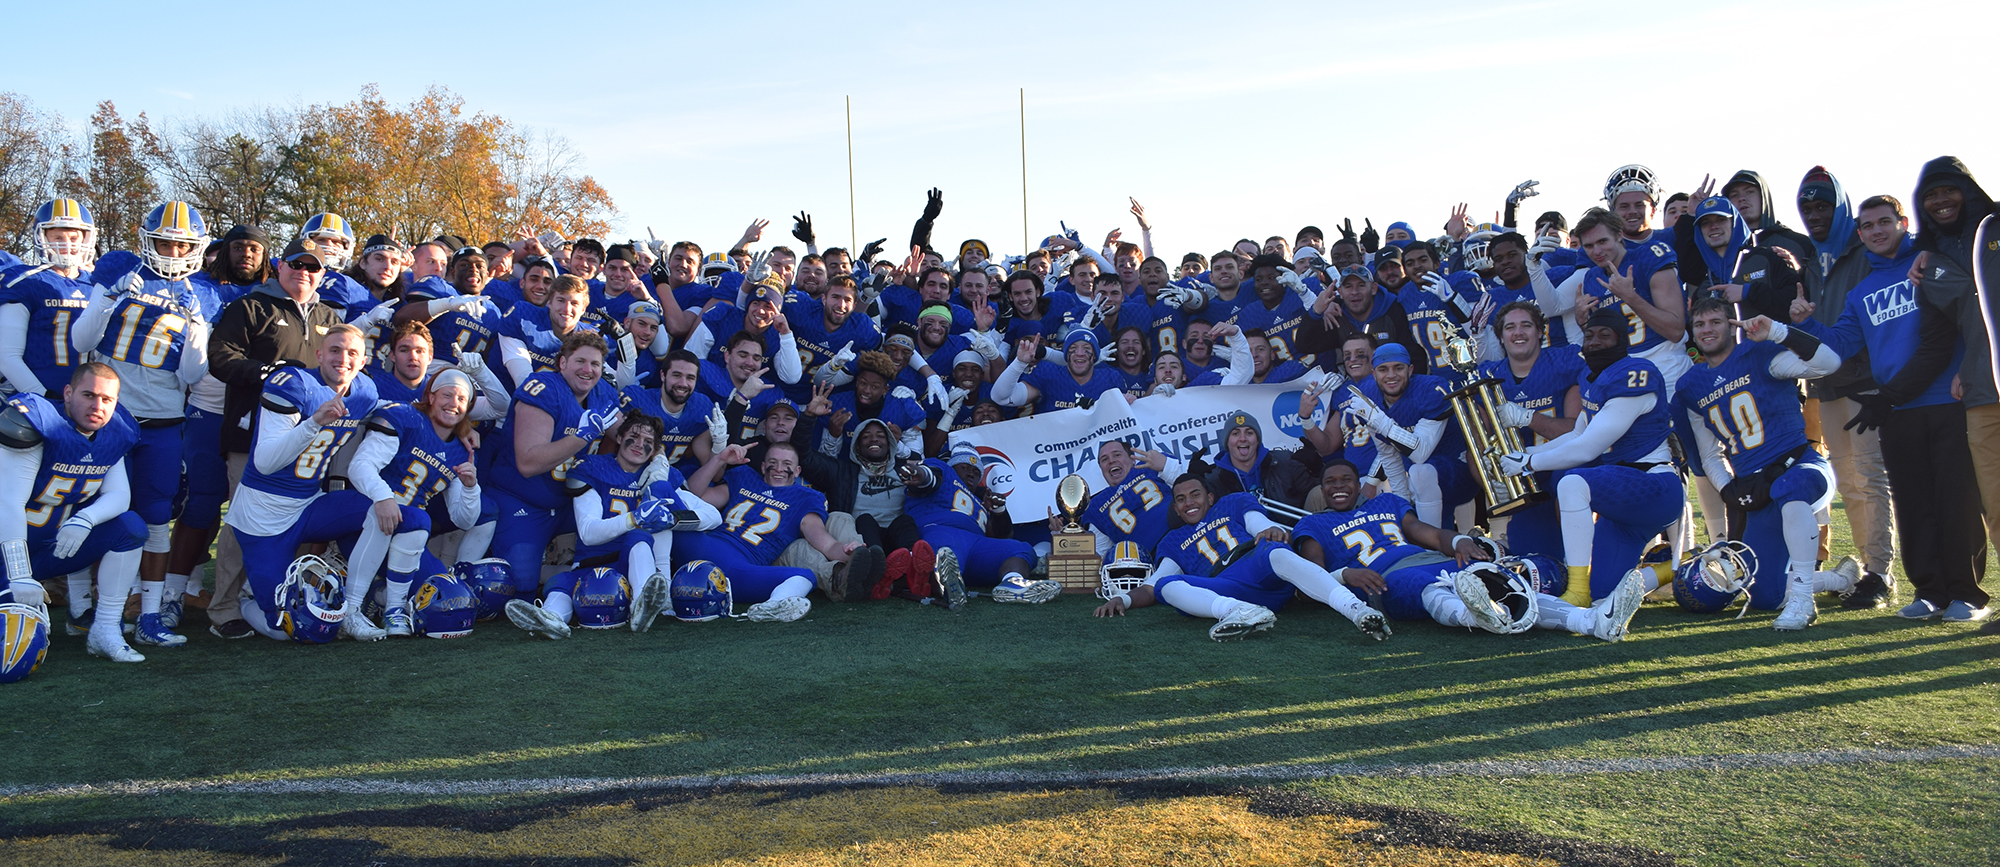 Western New England was presented with the CCC Football Championship trophies at the conclusion of Saturday's 55-14 victory over Nichols at Golden Bear Stadium (photo by Rachael Margossian).